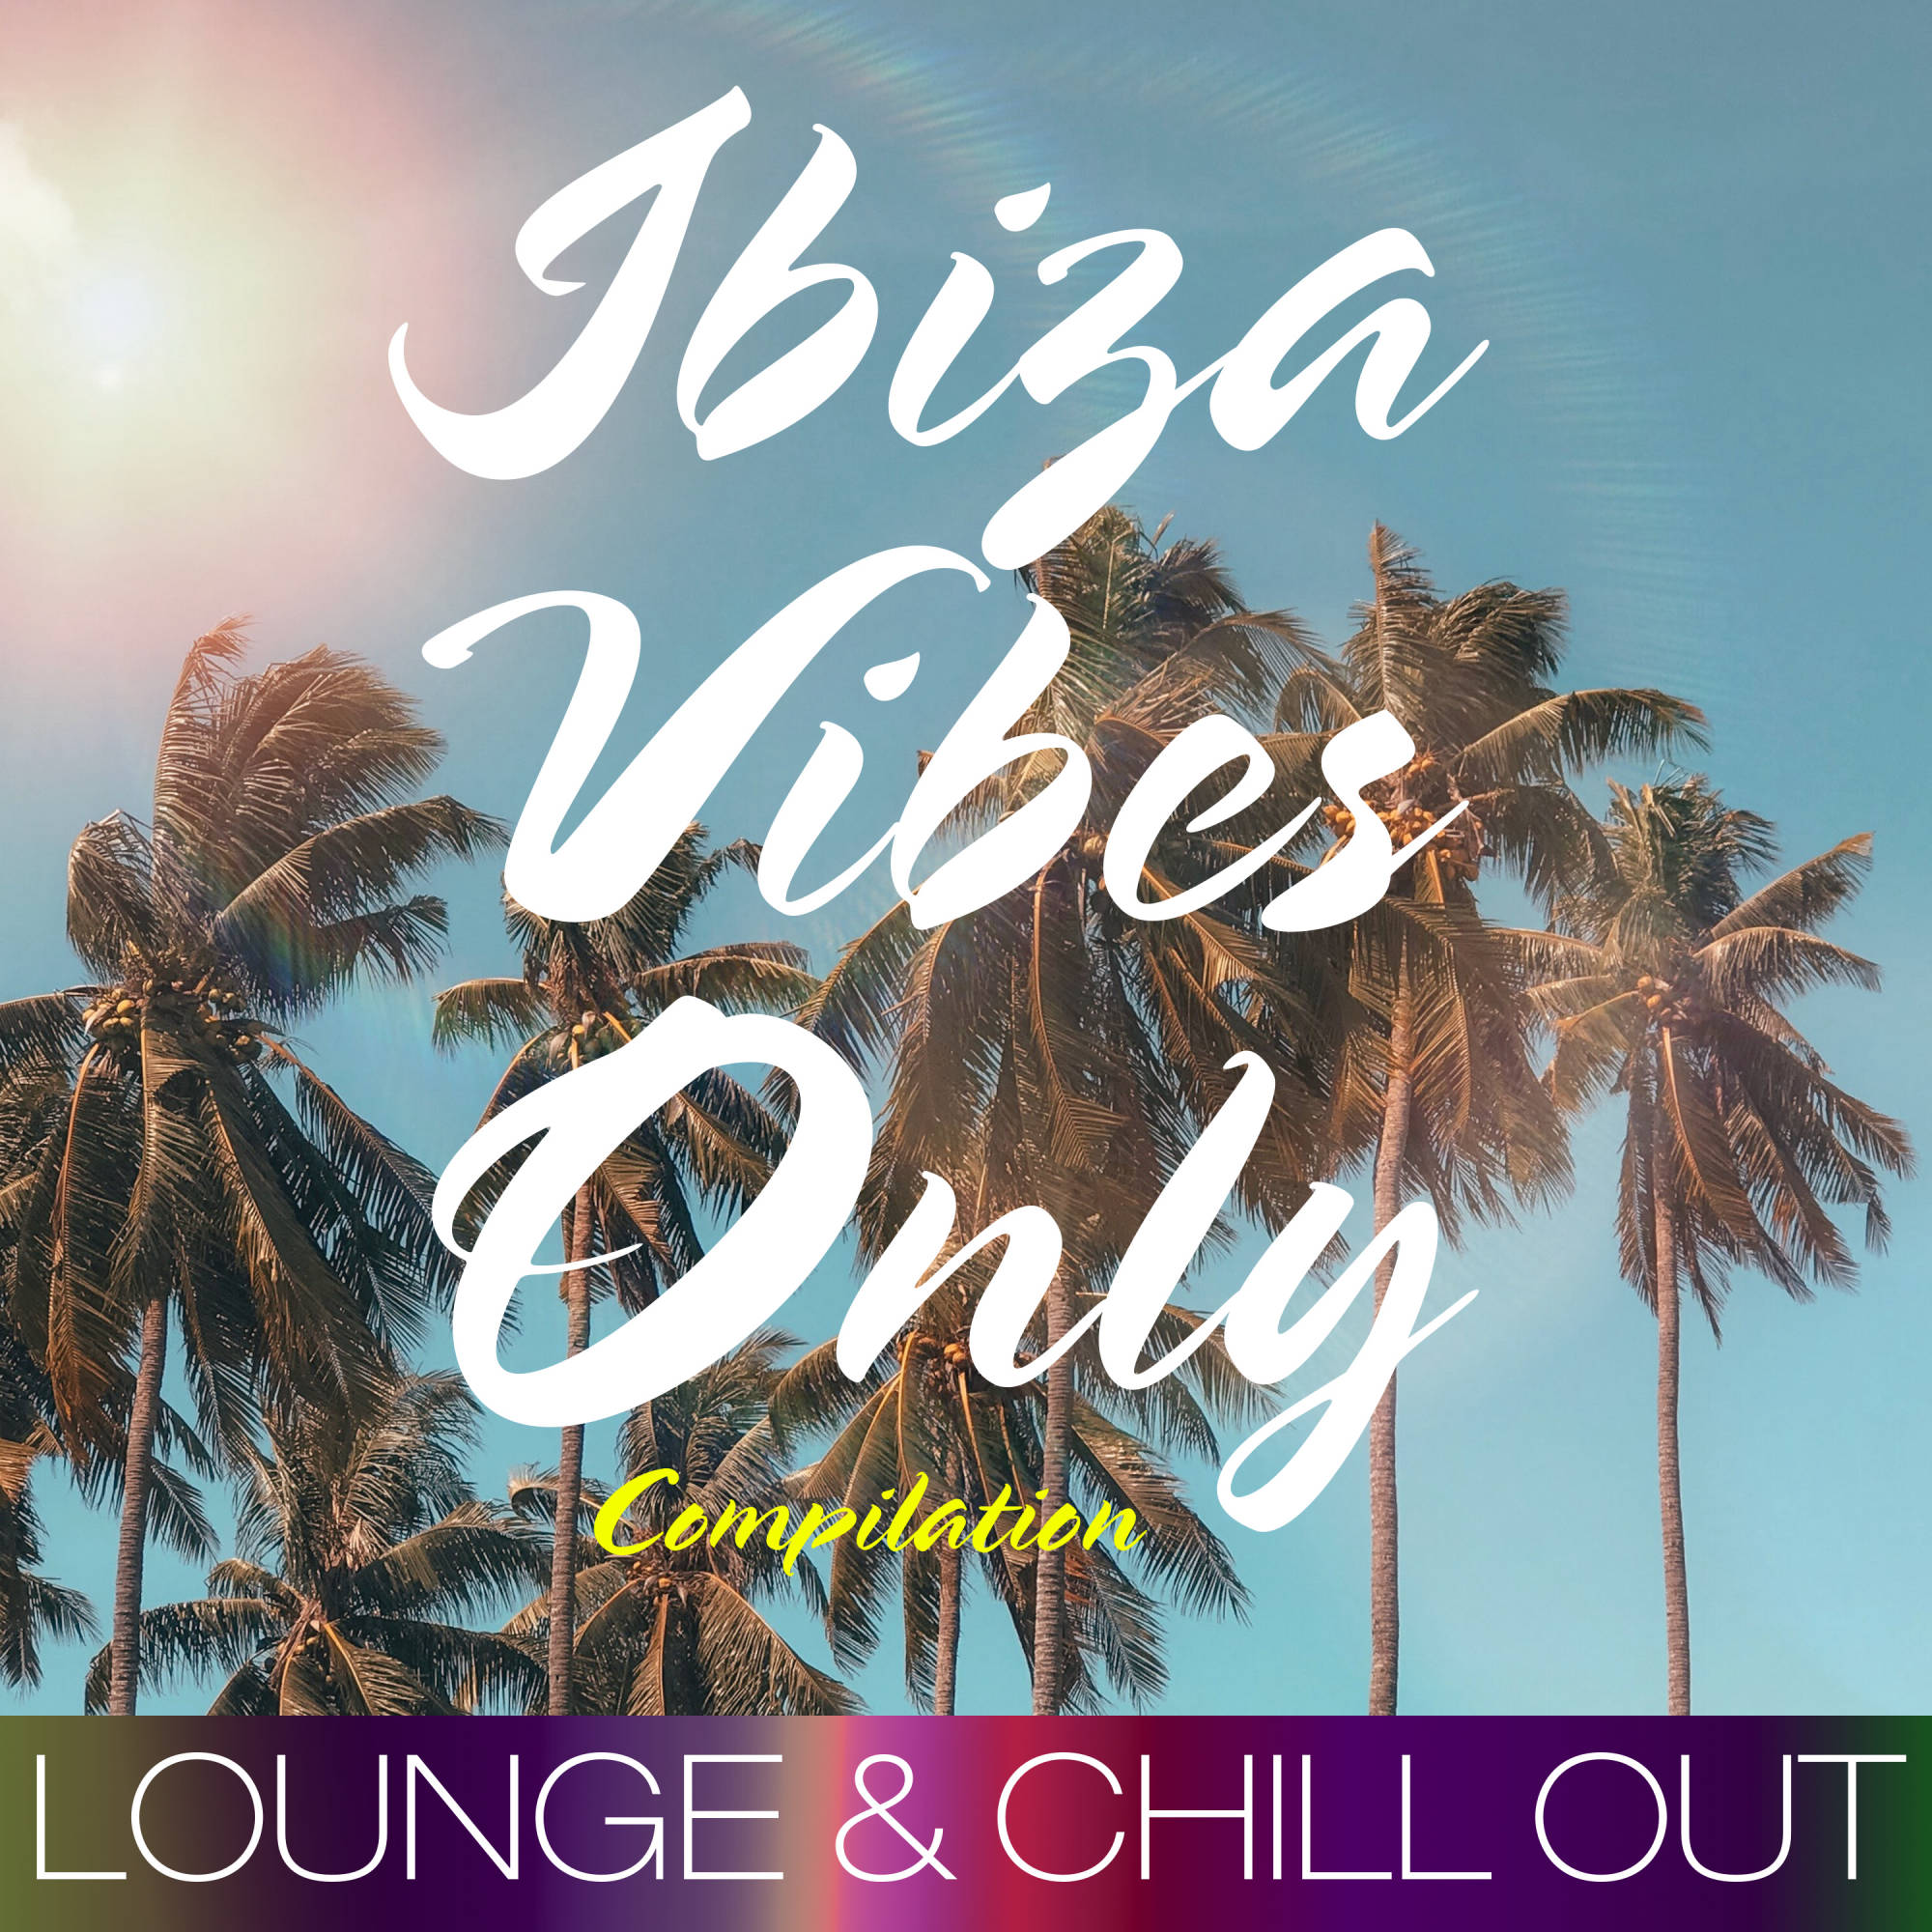 Ibiza Vibes Only Compilation (Lounge & Chill Out)